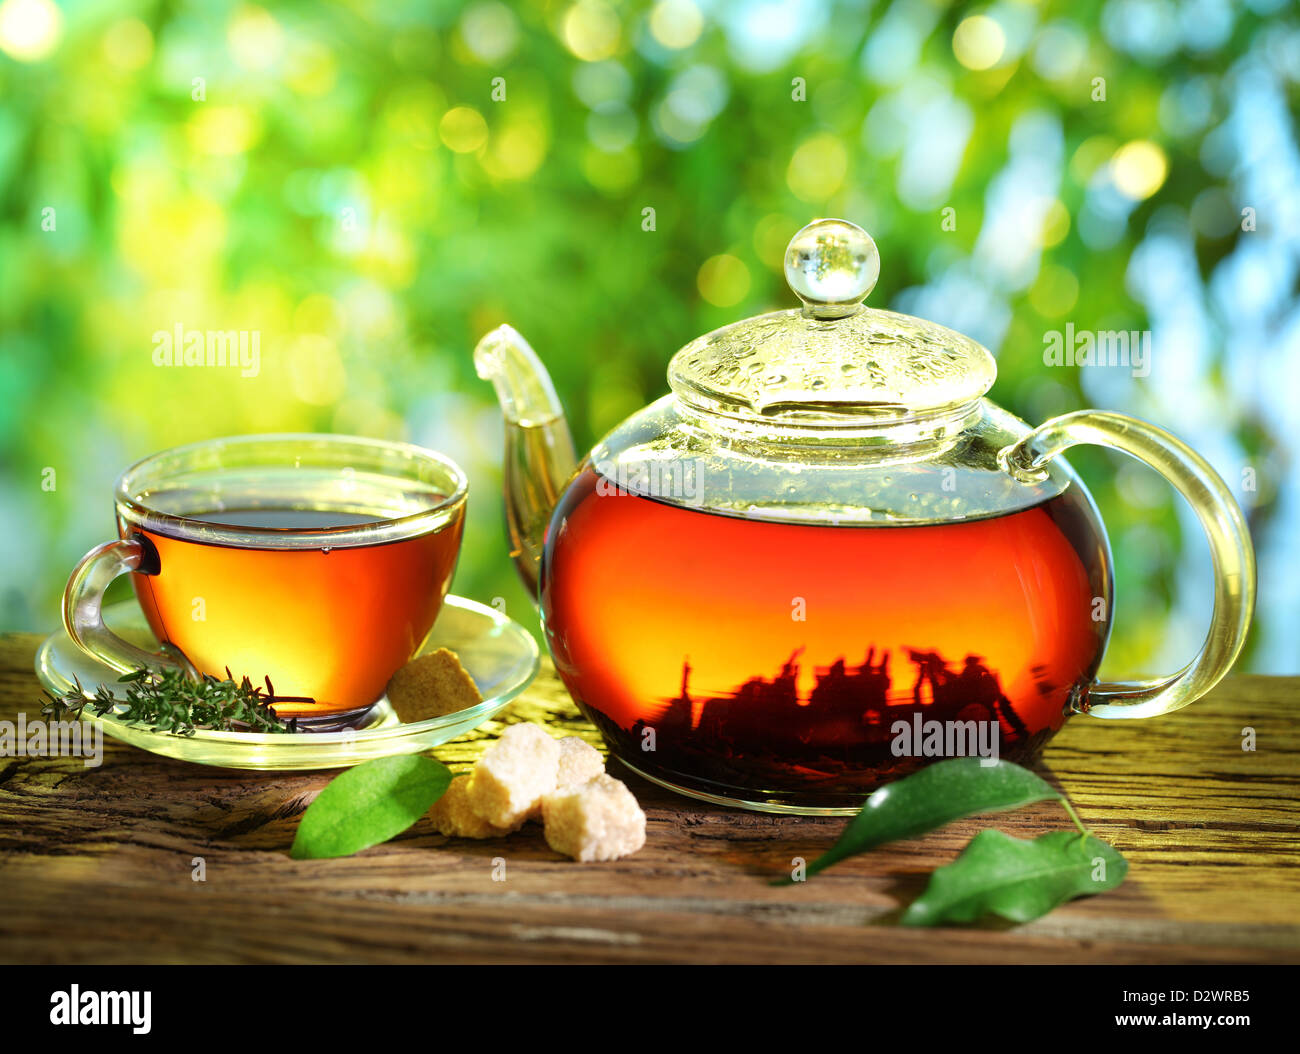 Cup of tea and teapot on a blurred background of nature. - Stock Image